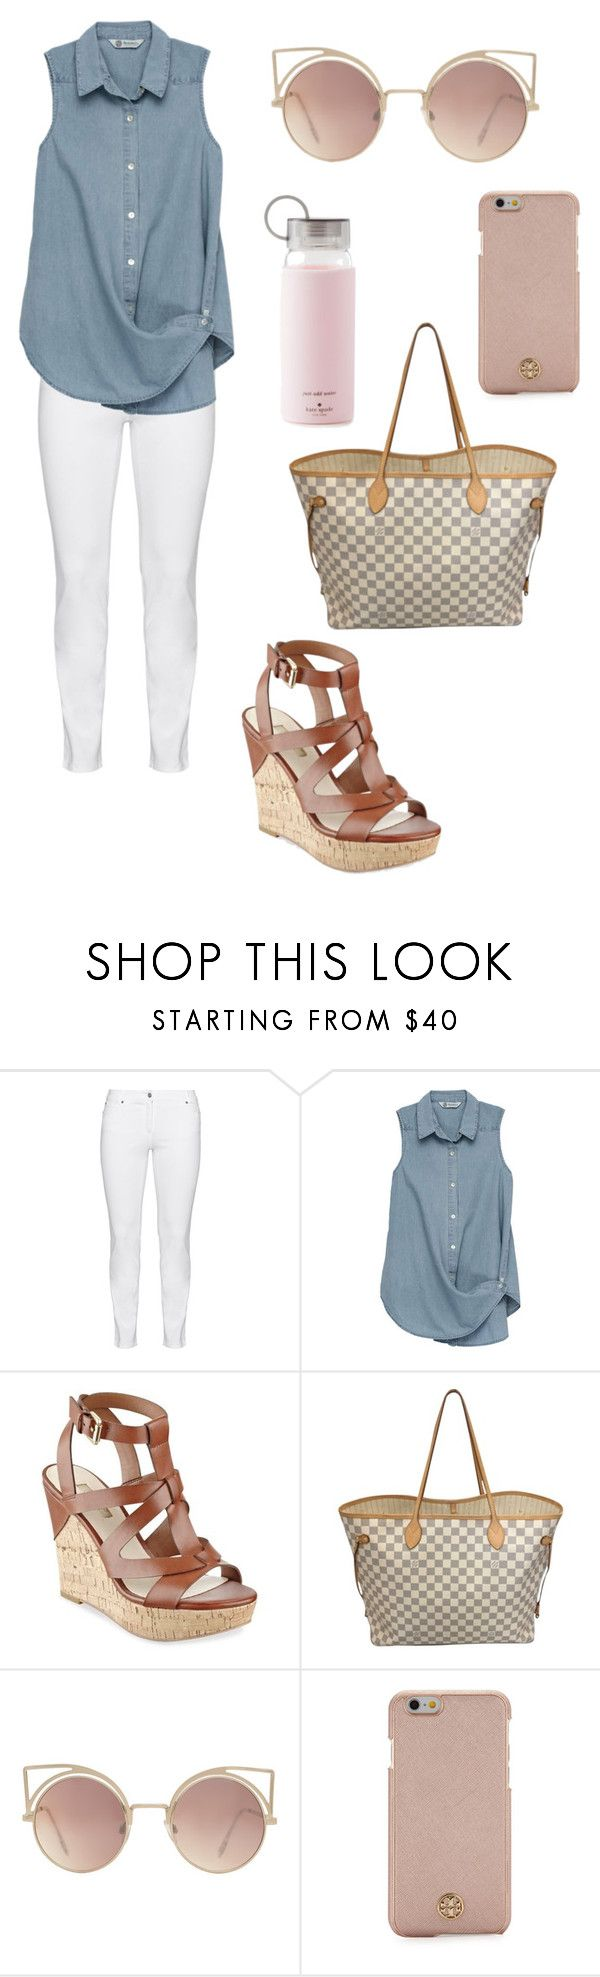 """""""cute spring outfit"""" by fashionblogger2122 on Polyvore featuring Steilmann, Bobeau, GUESS, Louis Vuitton, MANGO, Tory Burch and Kate Spade"""